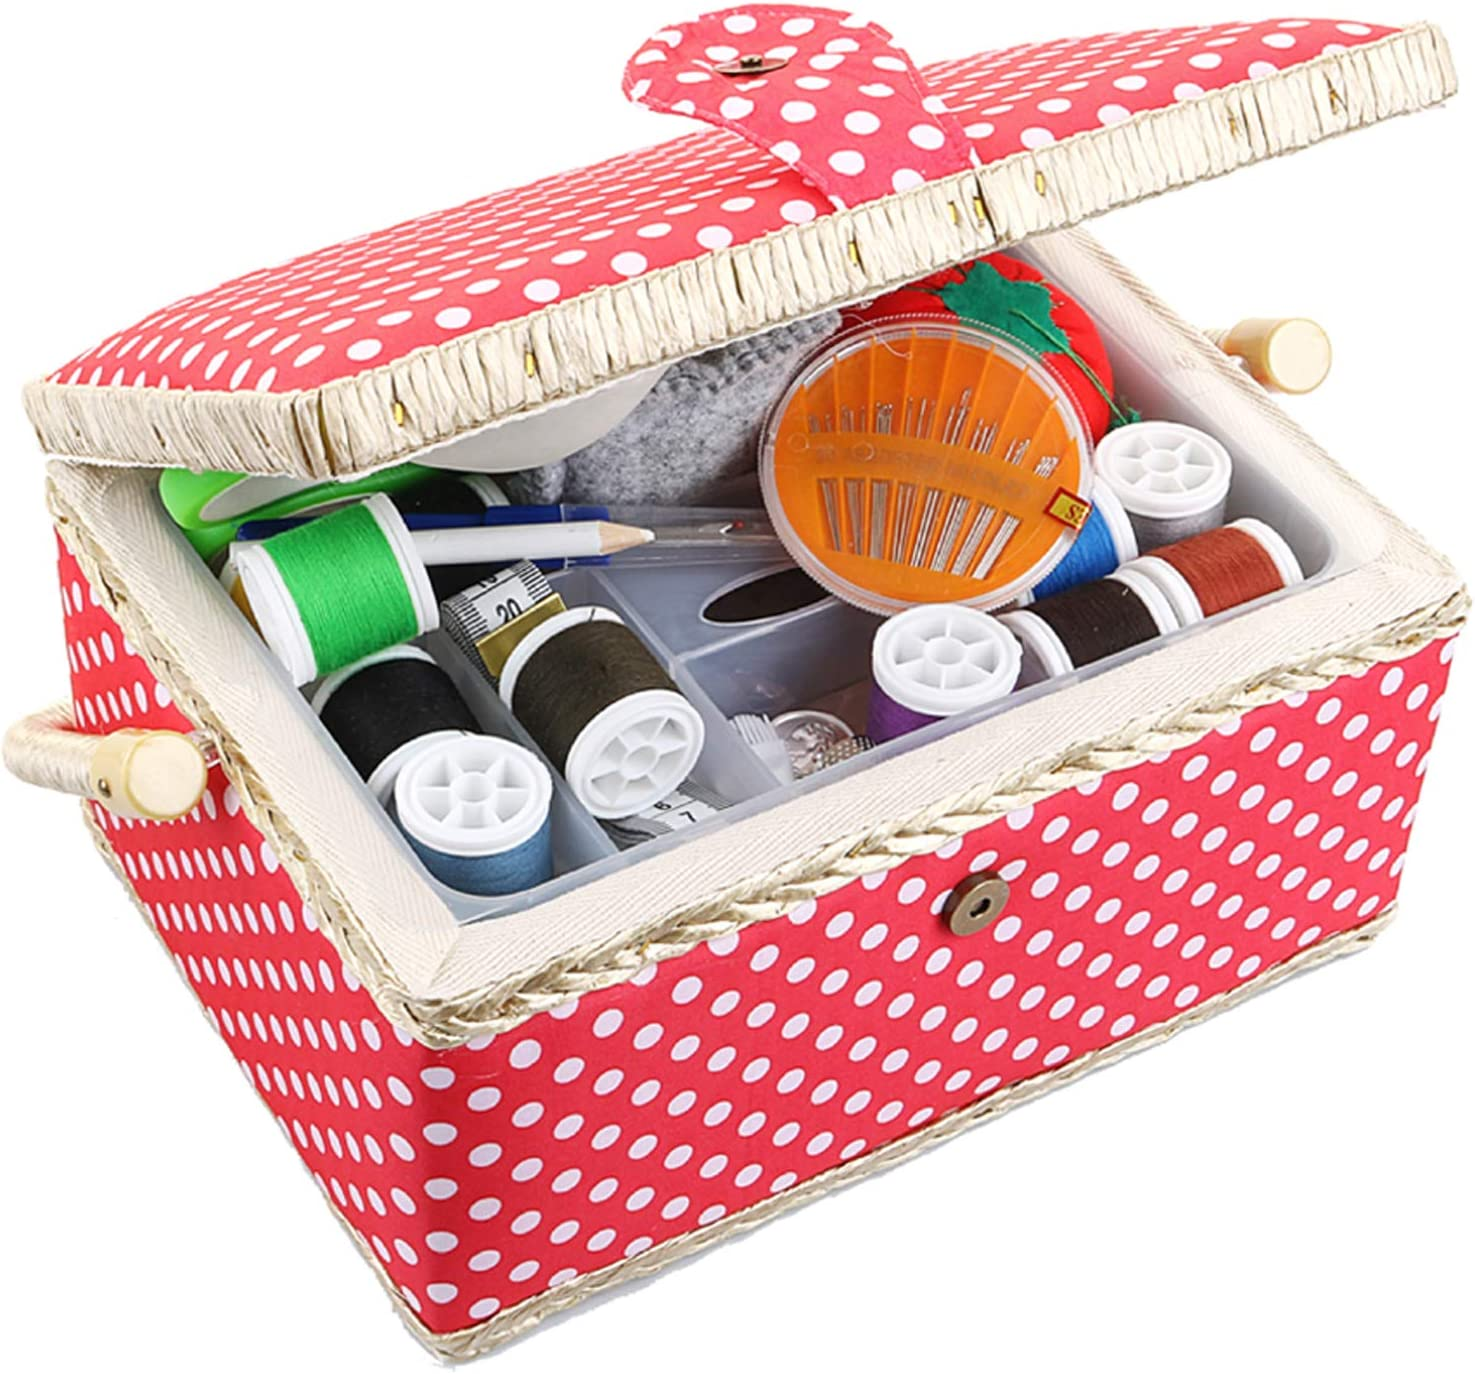 Large Sewing Box with Japan Popular overseas Maker New Accessories Kit and Storage Organiz